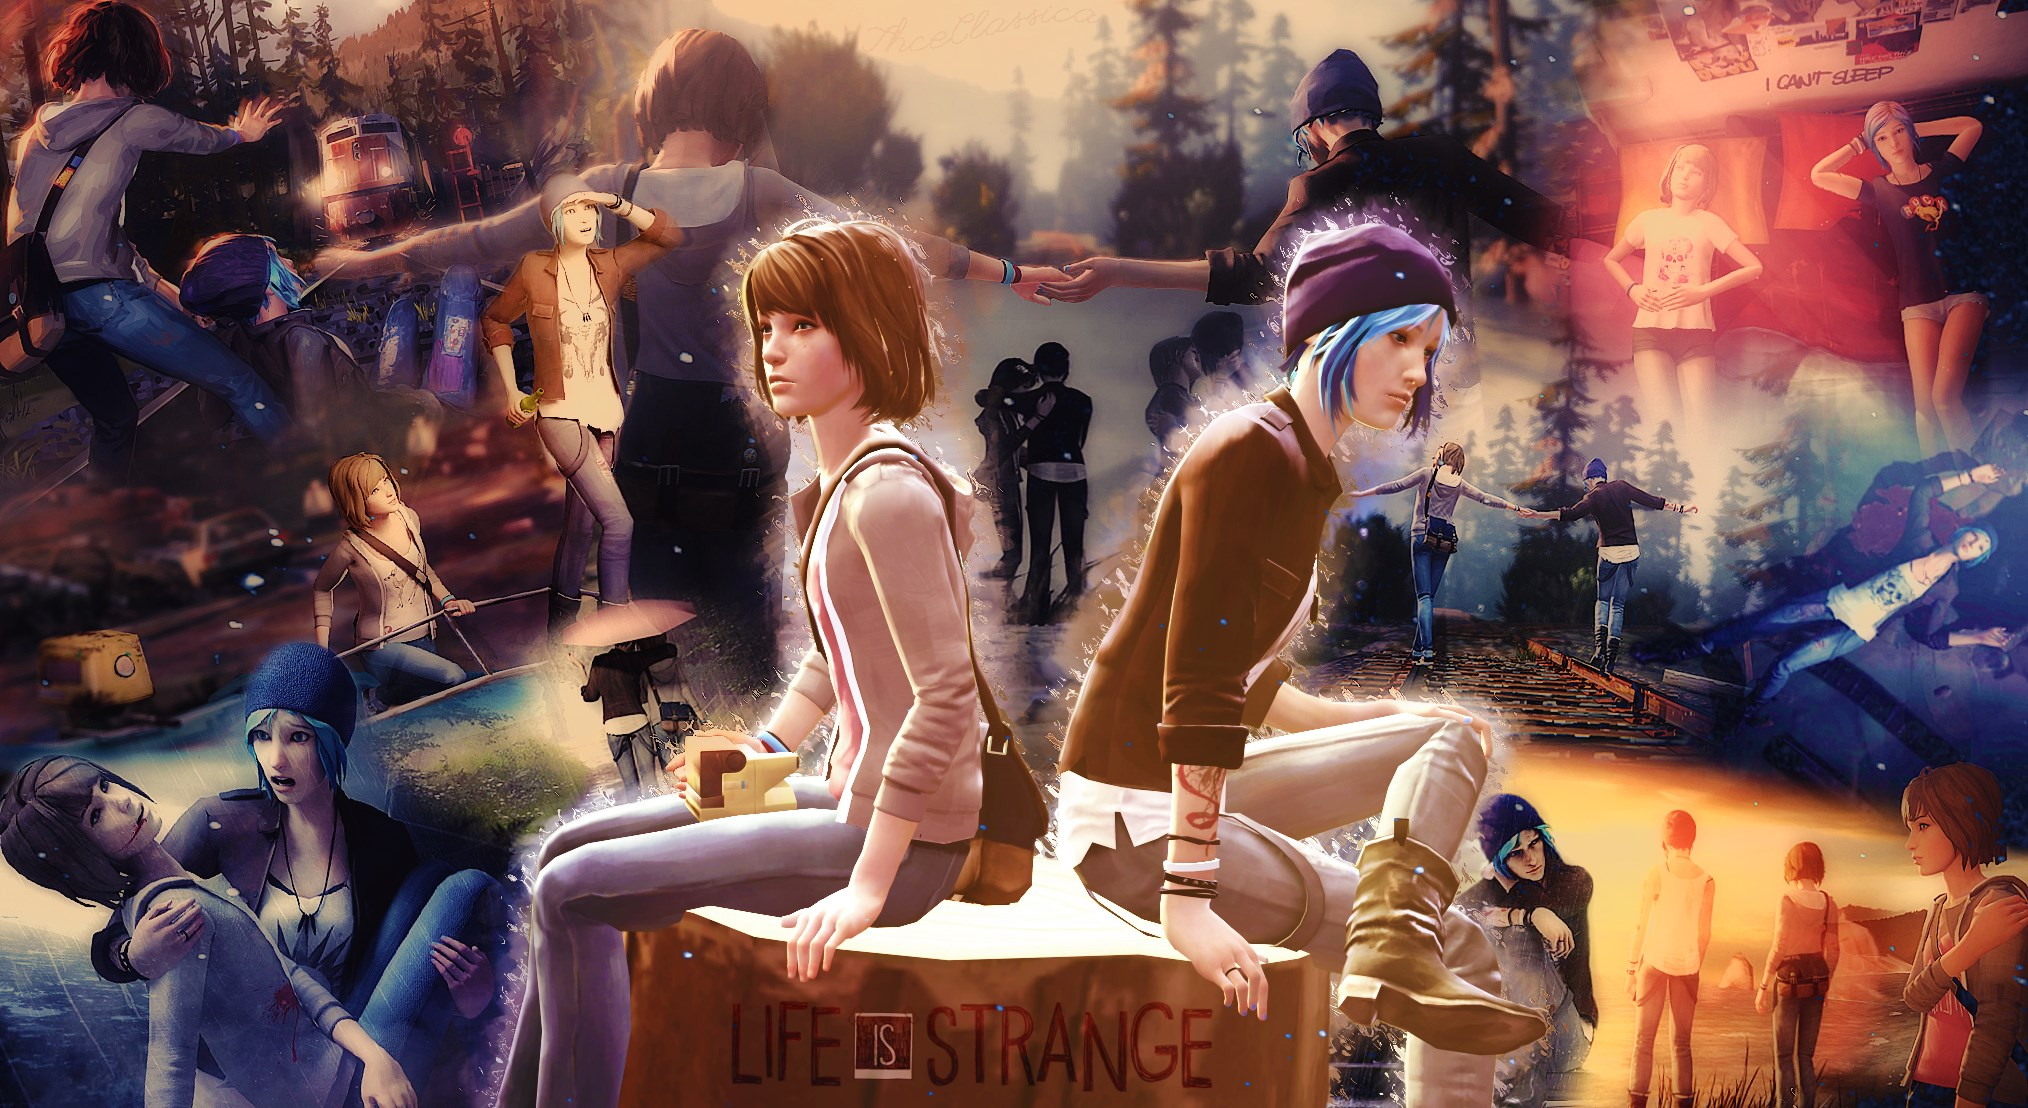 Life Is Strange Wallpaper Hd Resolution Is Cool Wallpapers